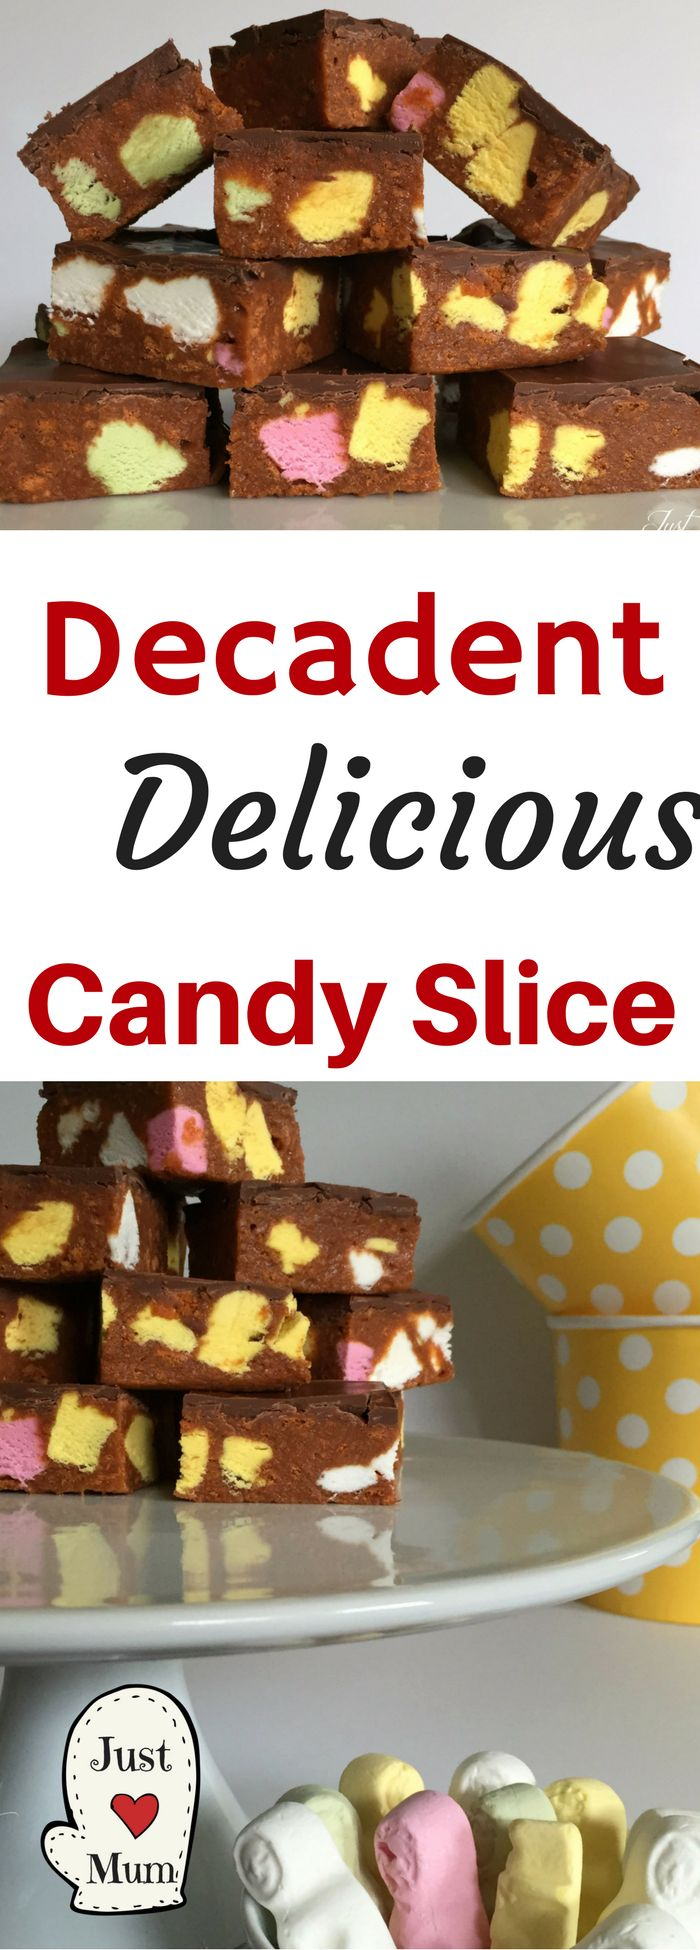 This Candy Slice is absolutely delicious, simple and a great party treat